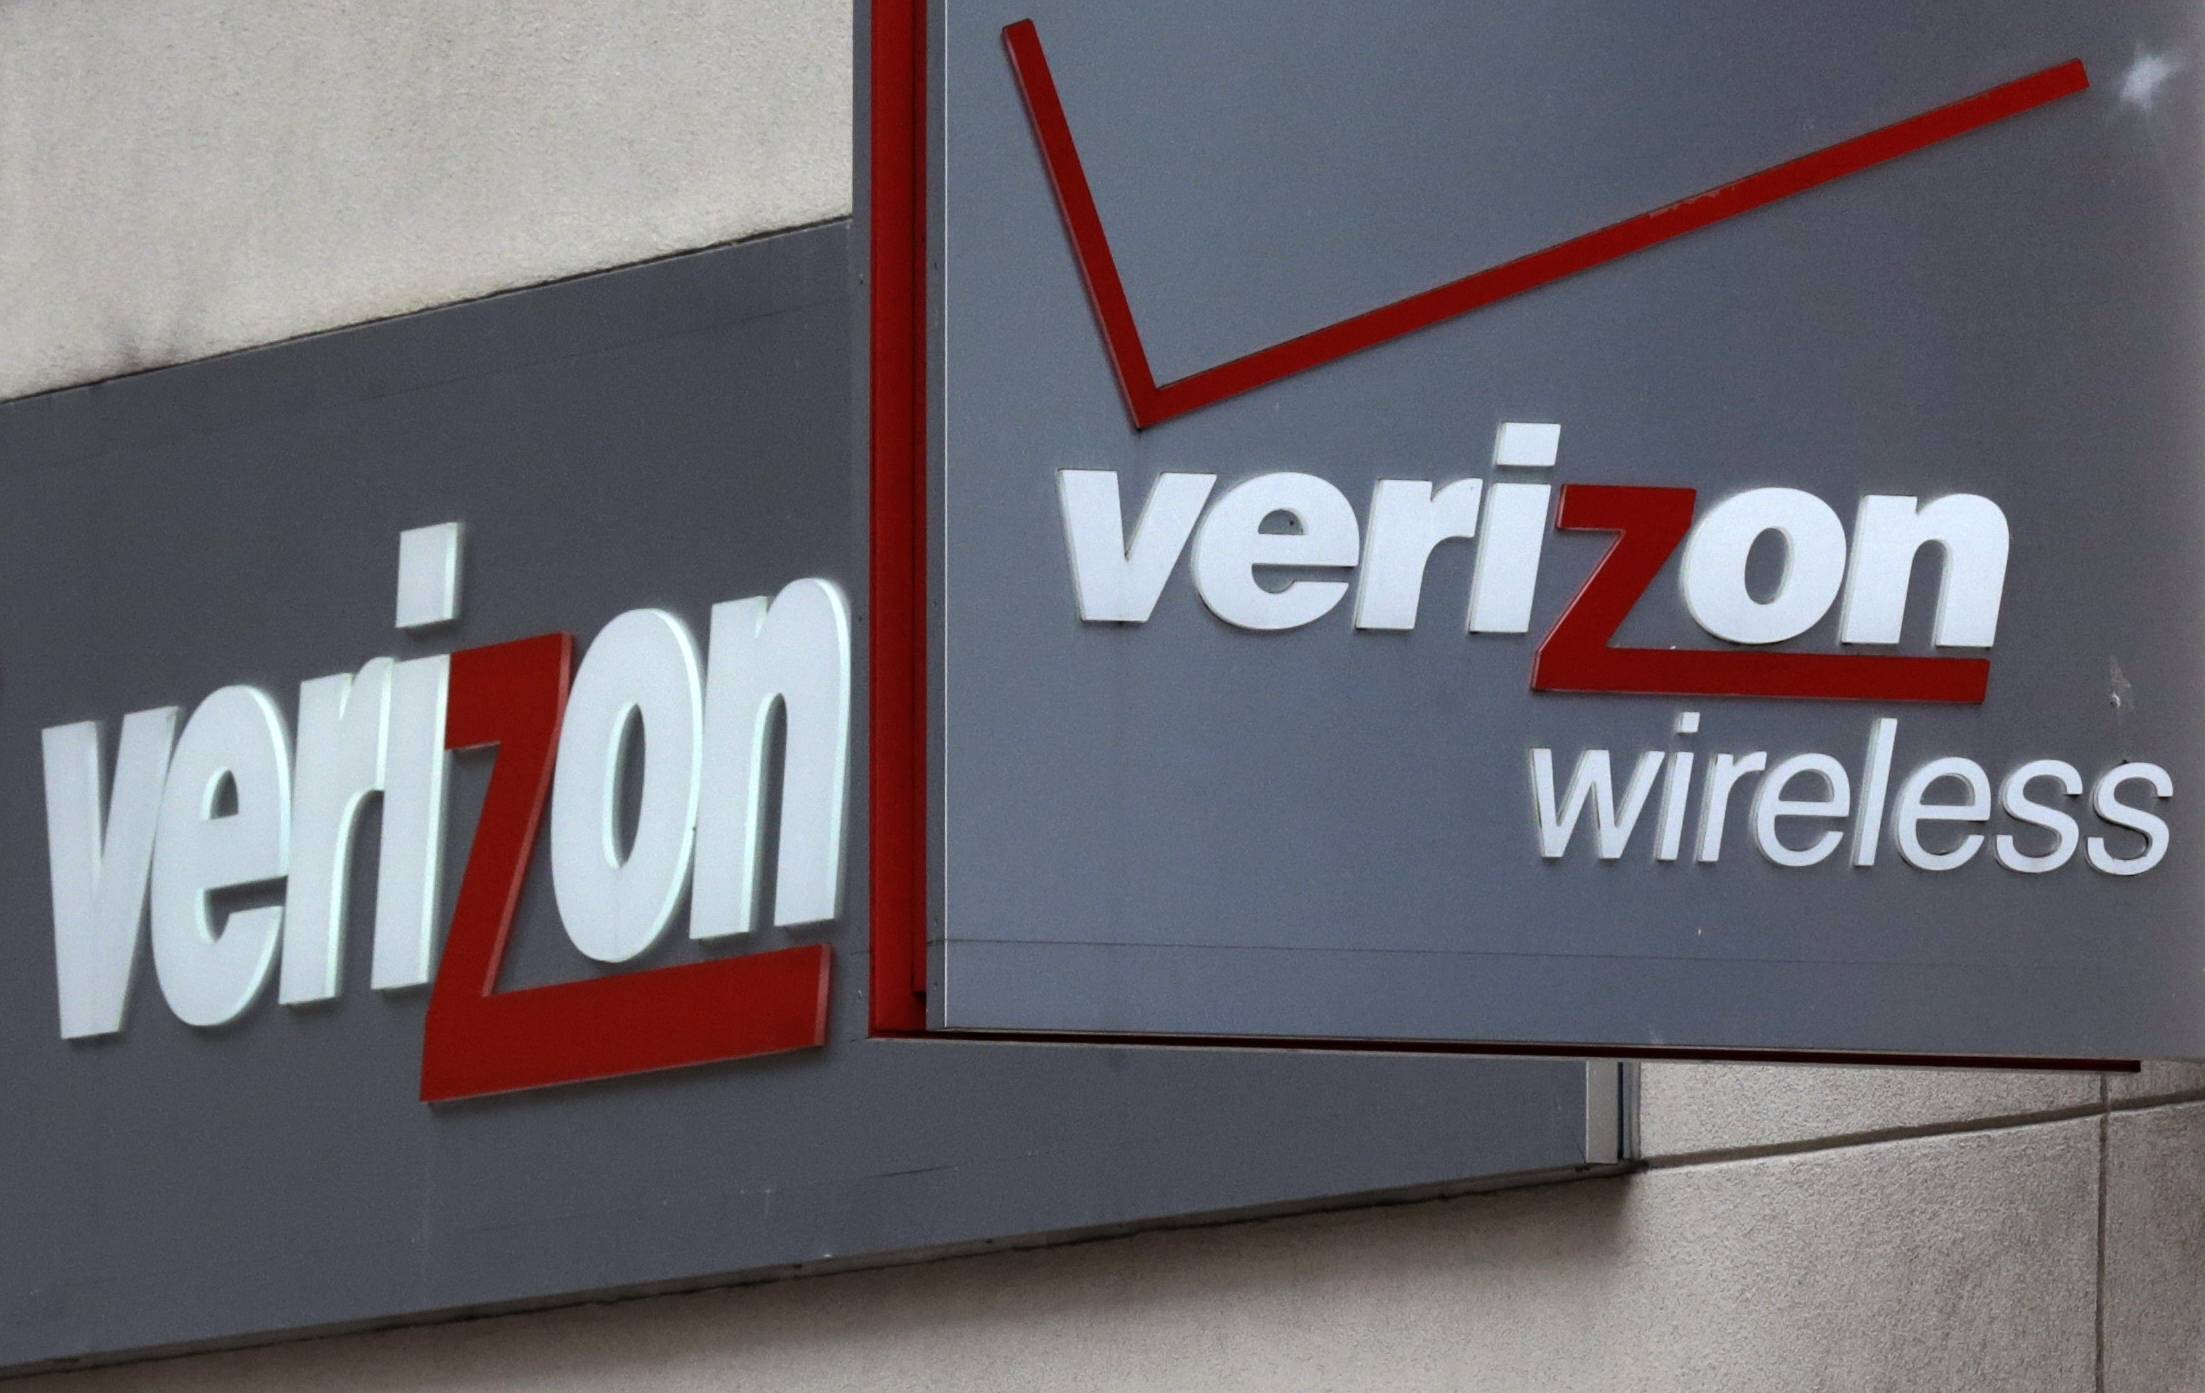 Verizon Wireless is launching a nationwide loyalty program this week for its 100-million-plus subscribers. There's a twist, though: To earn points for every dollar spent, subscribers must consent to have their movements tracked so the company can help target ads that match their interests.